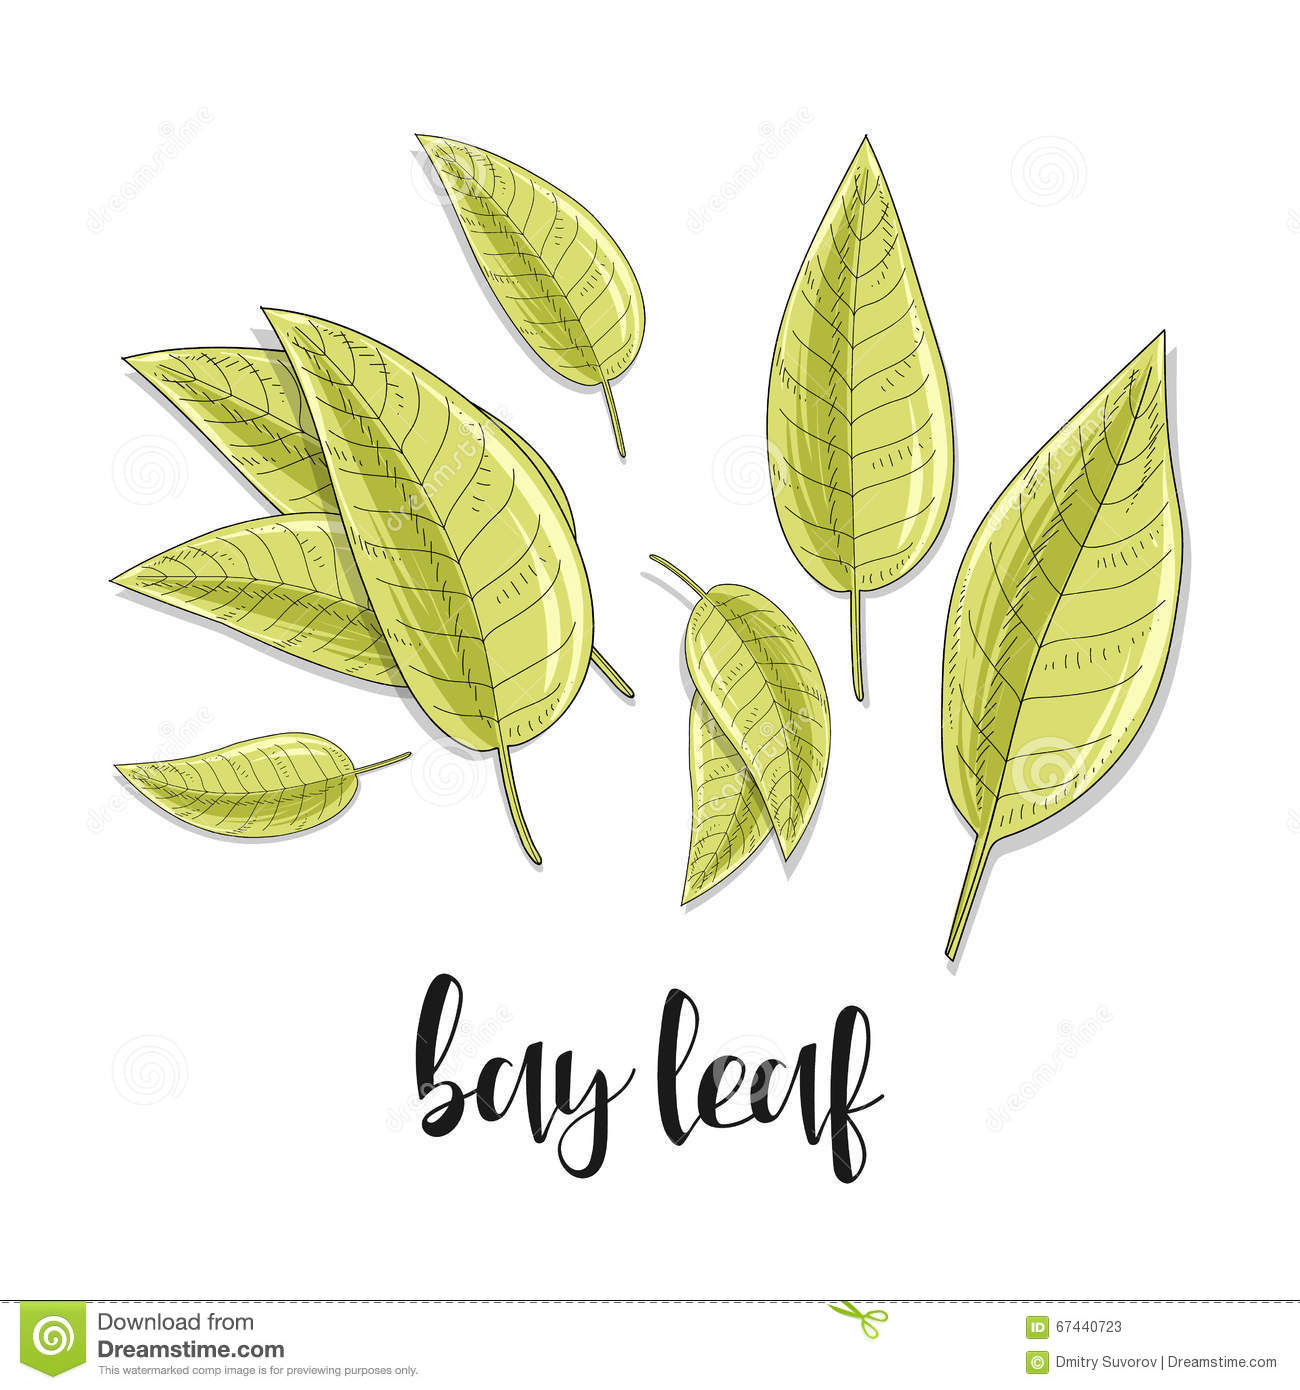 Bay leaves isolated object sketch spice for food culinary seasoning stock vector image 67440723 - Cook bay leaves ...